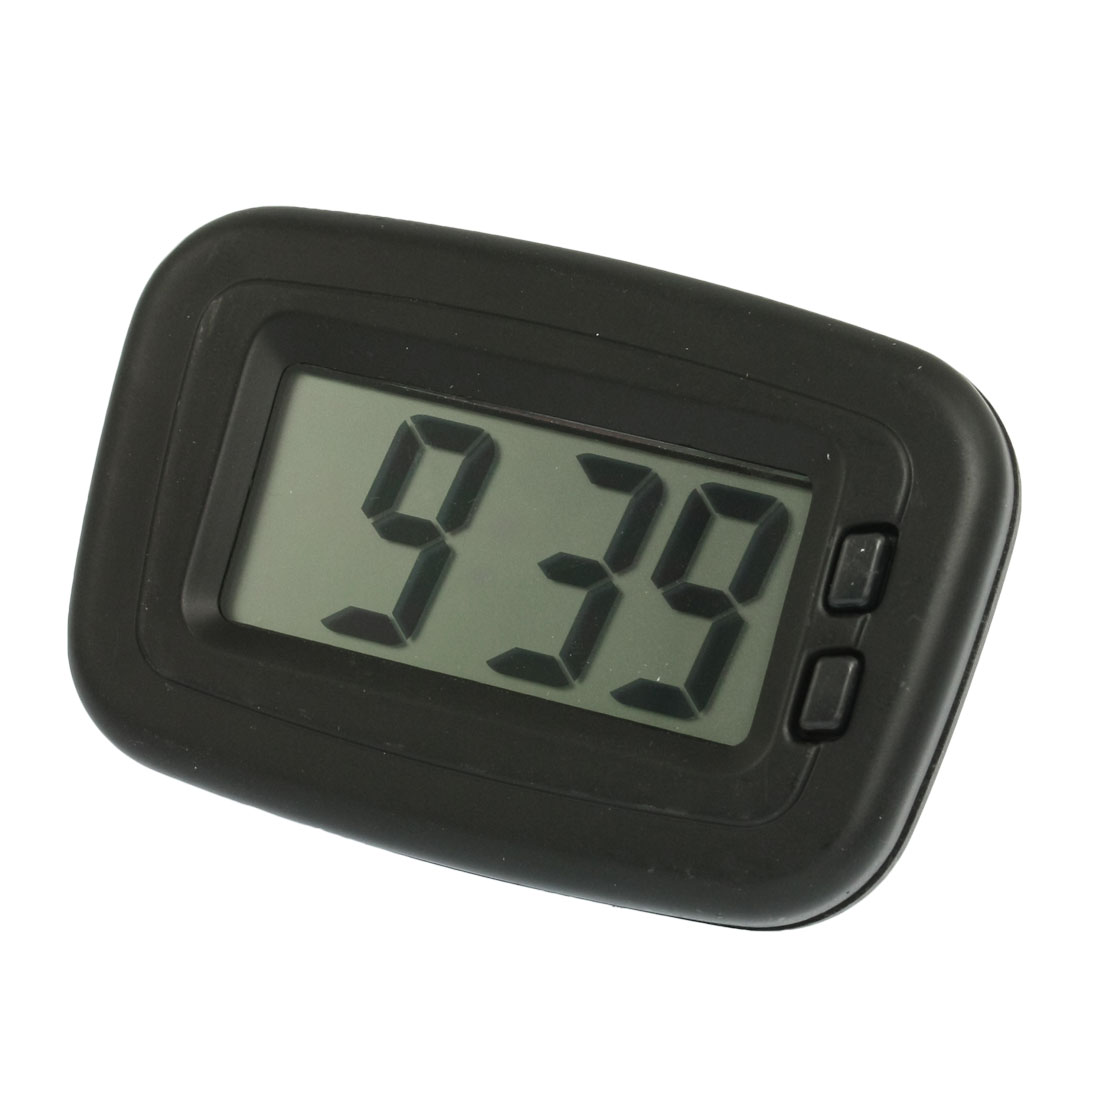 Car Plastic Case 2 Button Adhesive Base LCD Display Digital Clock Black